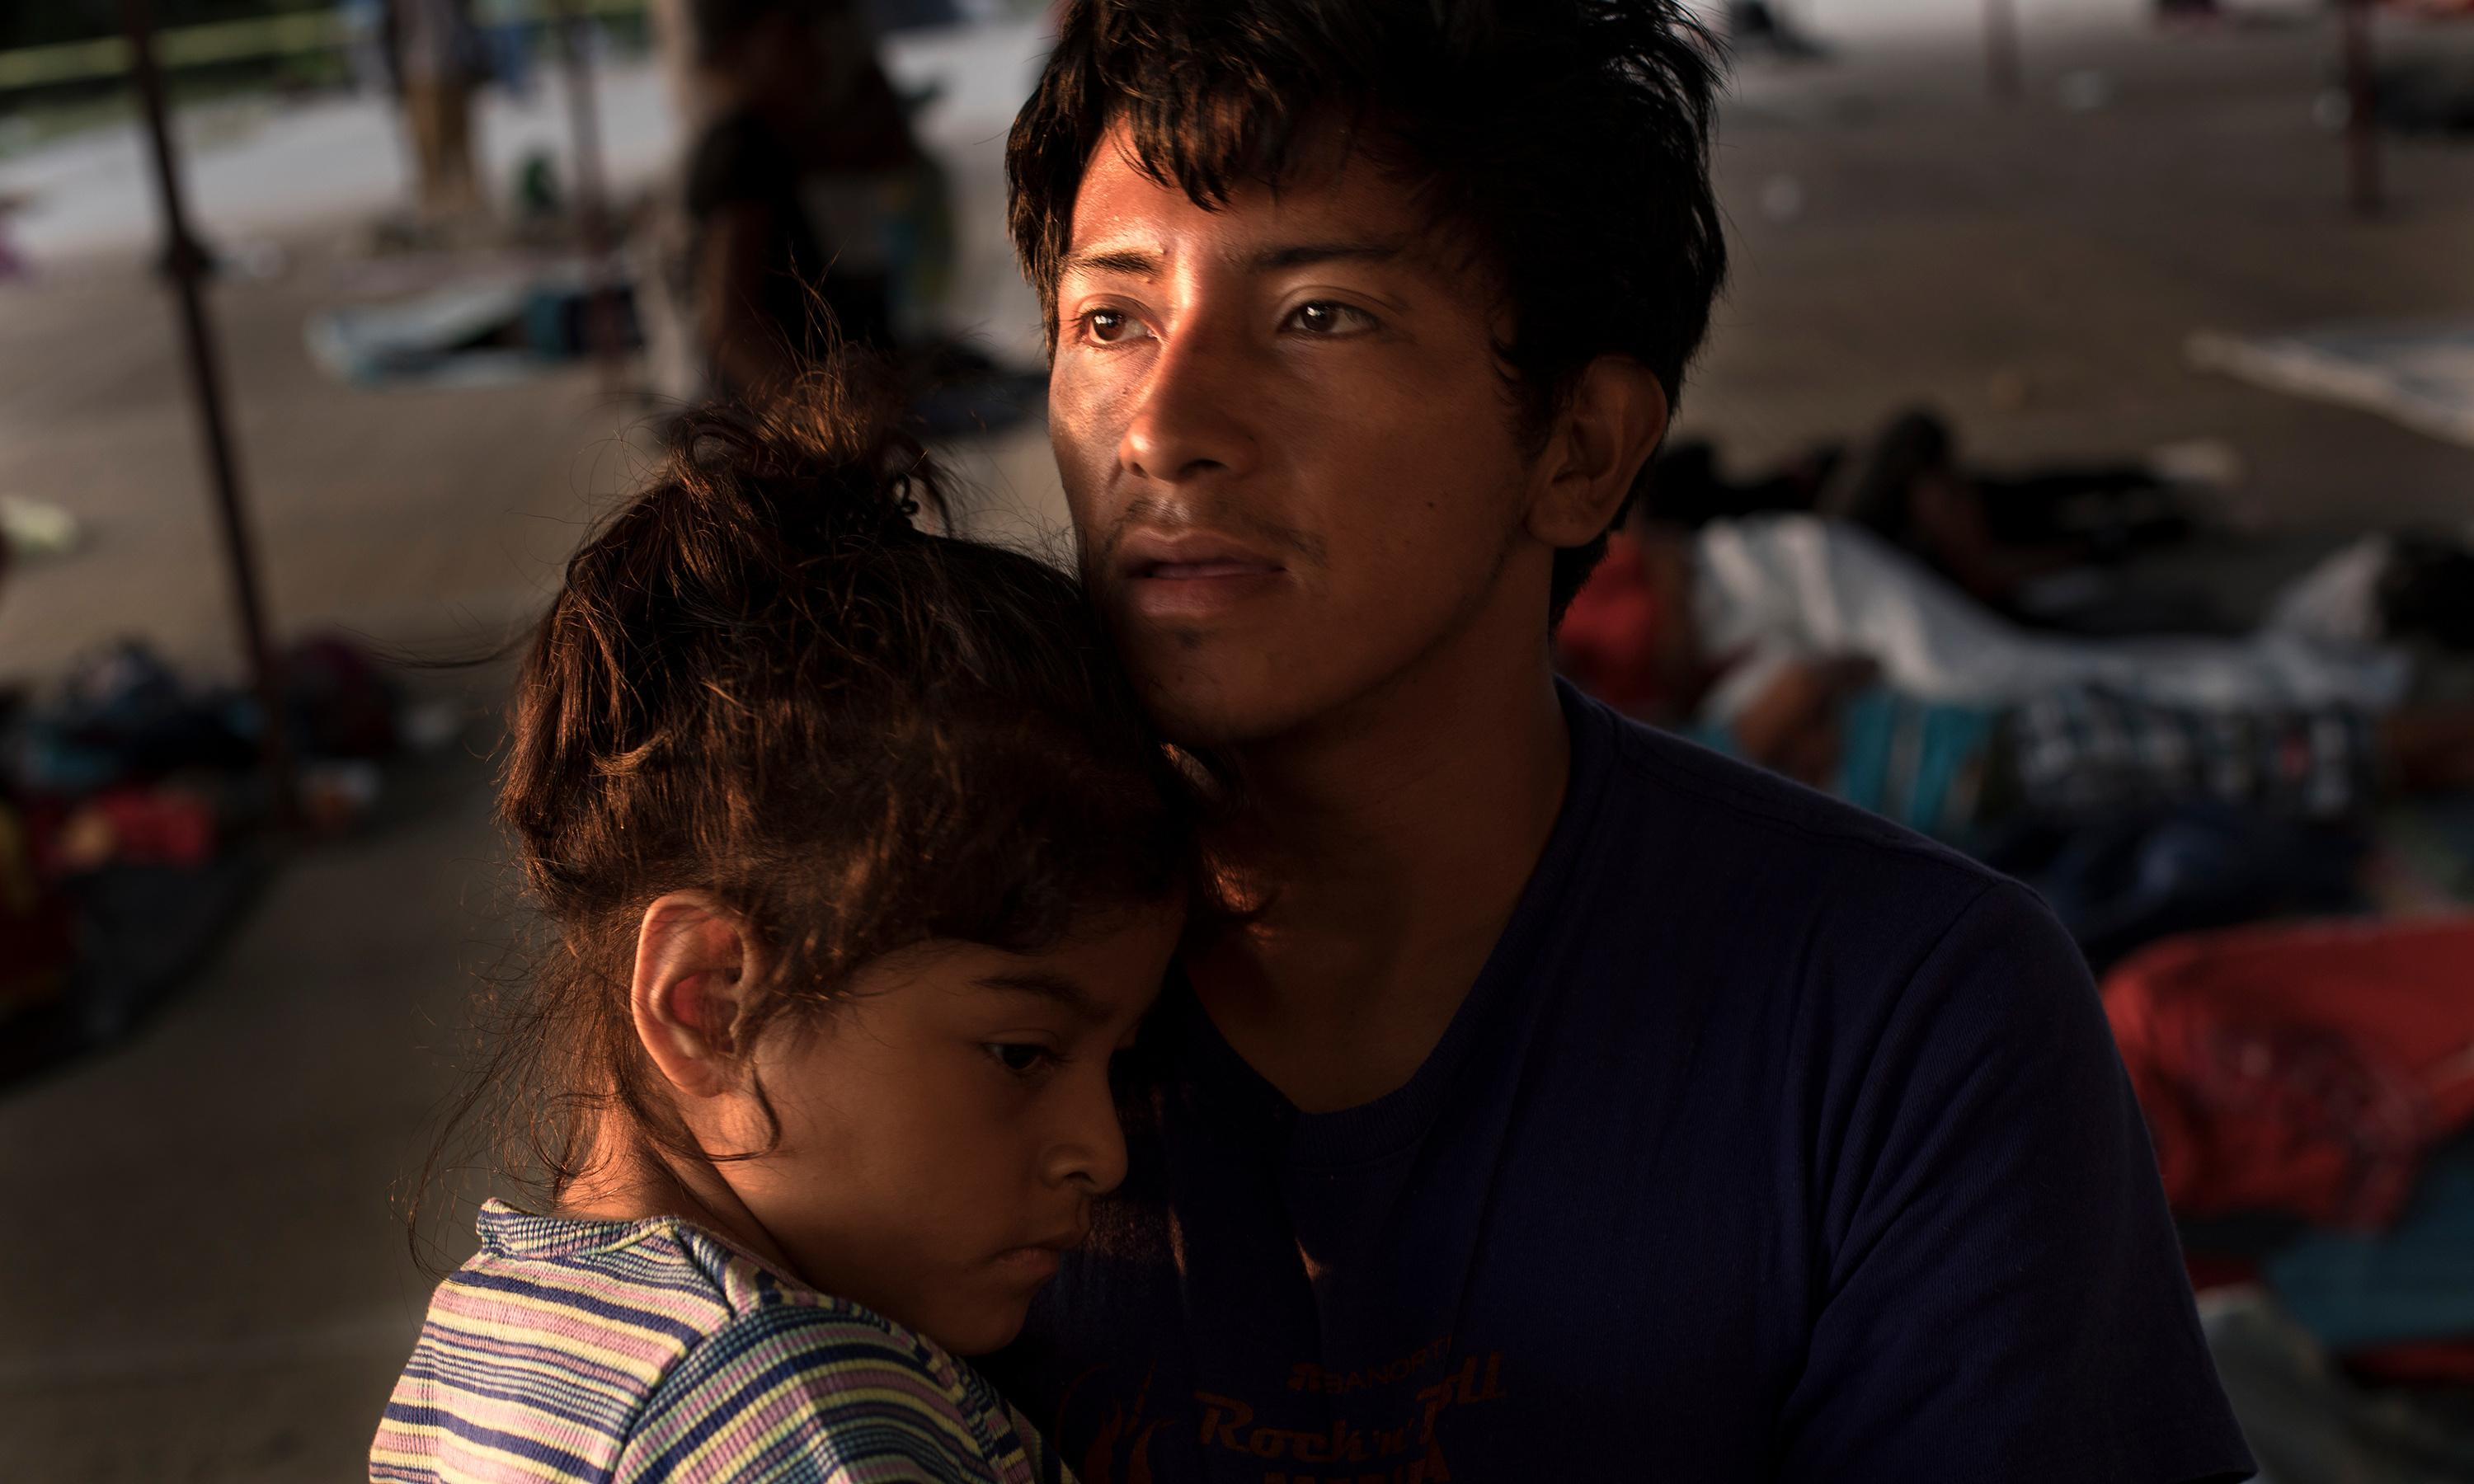 This is what Trump's caravan 'invasion' really looks like